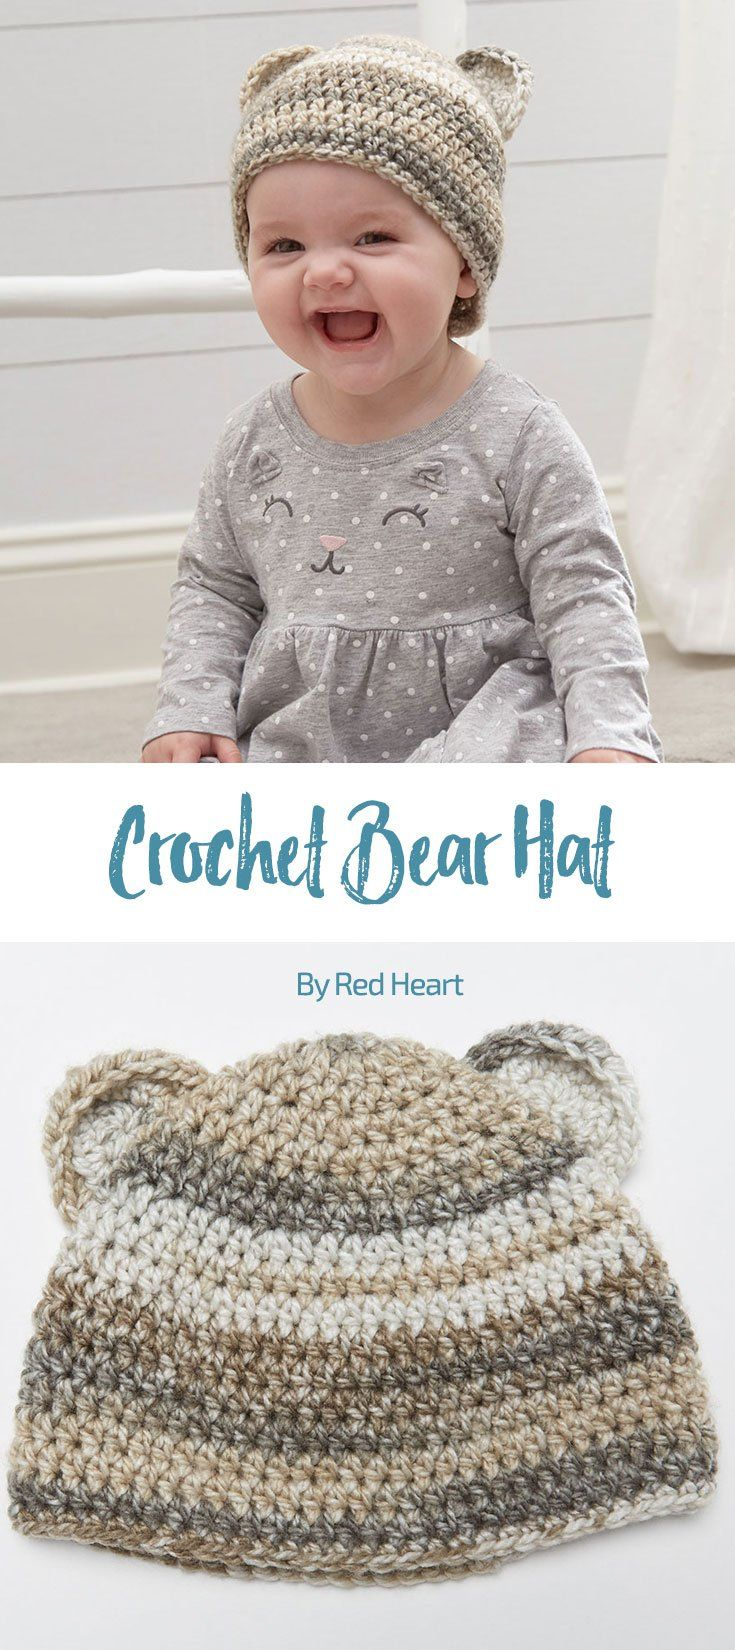 Crochet Bear Hat free crochet pattern in Hopscotch. | Knots ...